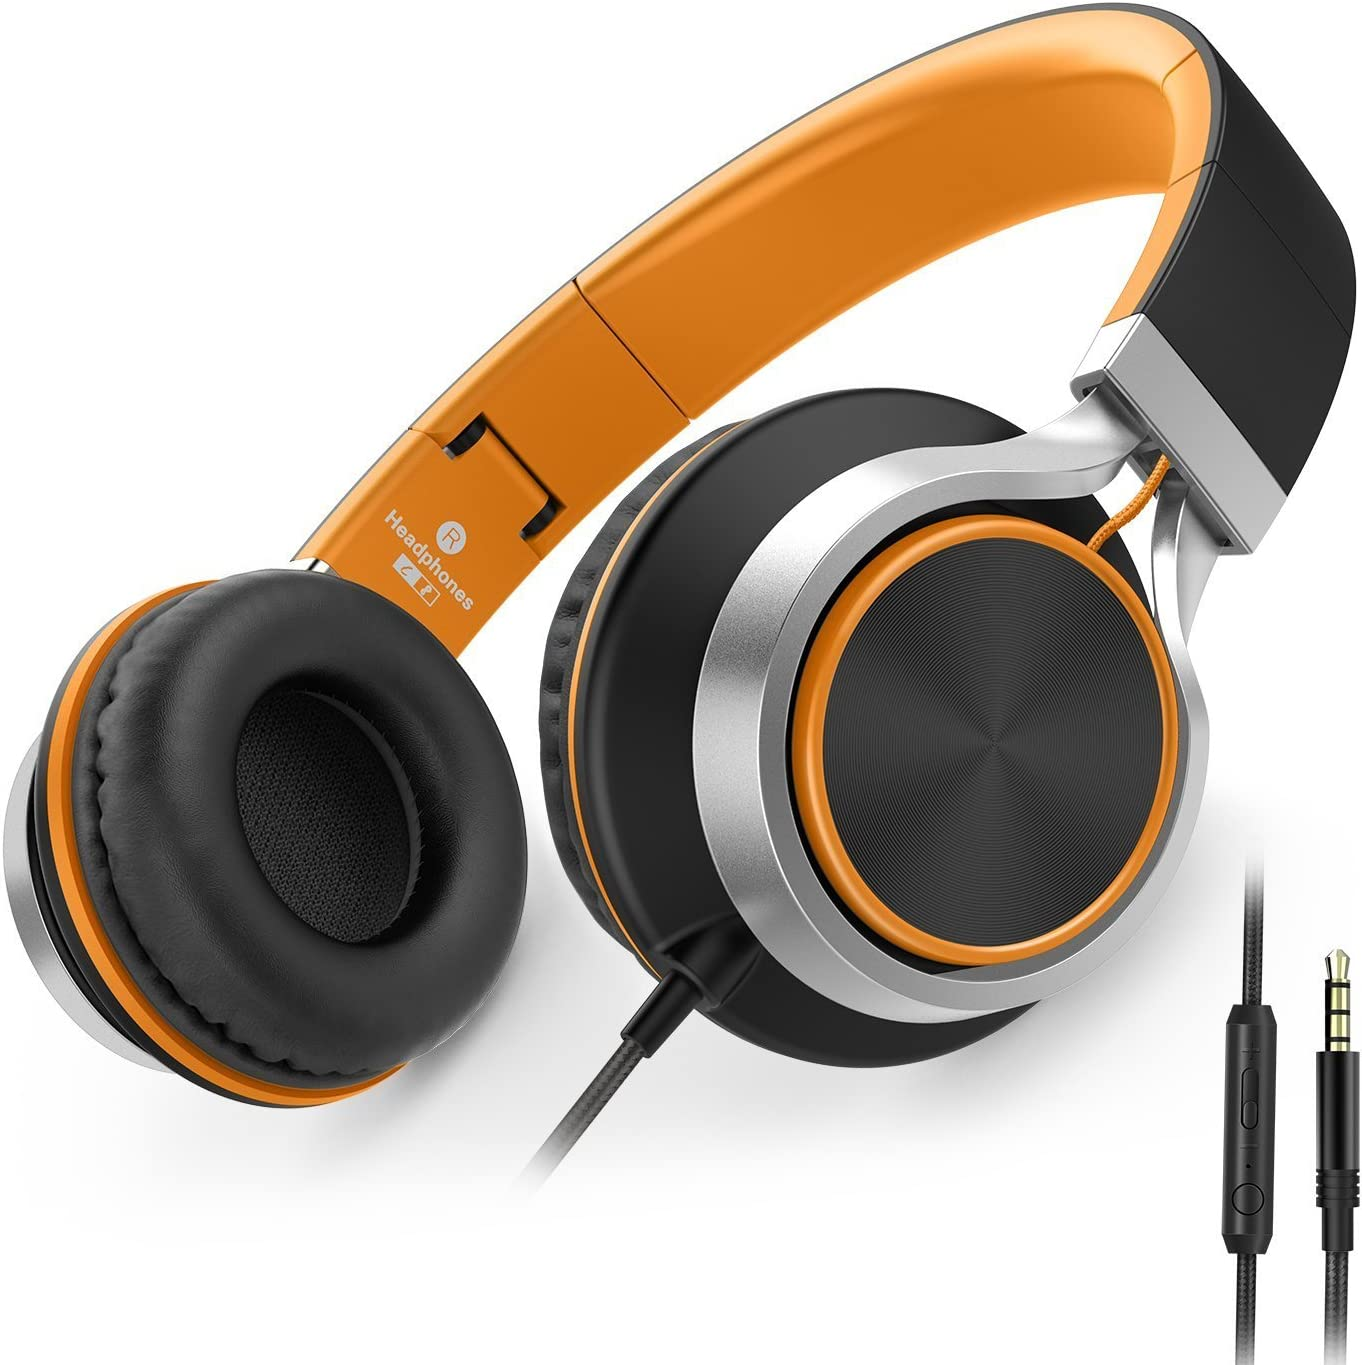 AILIHEN C8 Wired Folding Headphones with Microphone and Volume Control for Cellphones Tablets Android Smartphones Chromebook Laptop Computer Mp3/4 (Black/Orange)